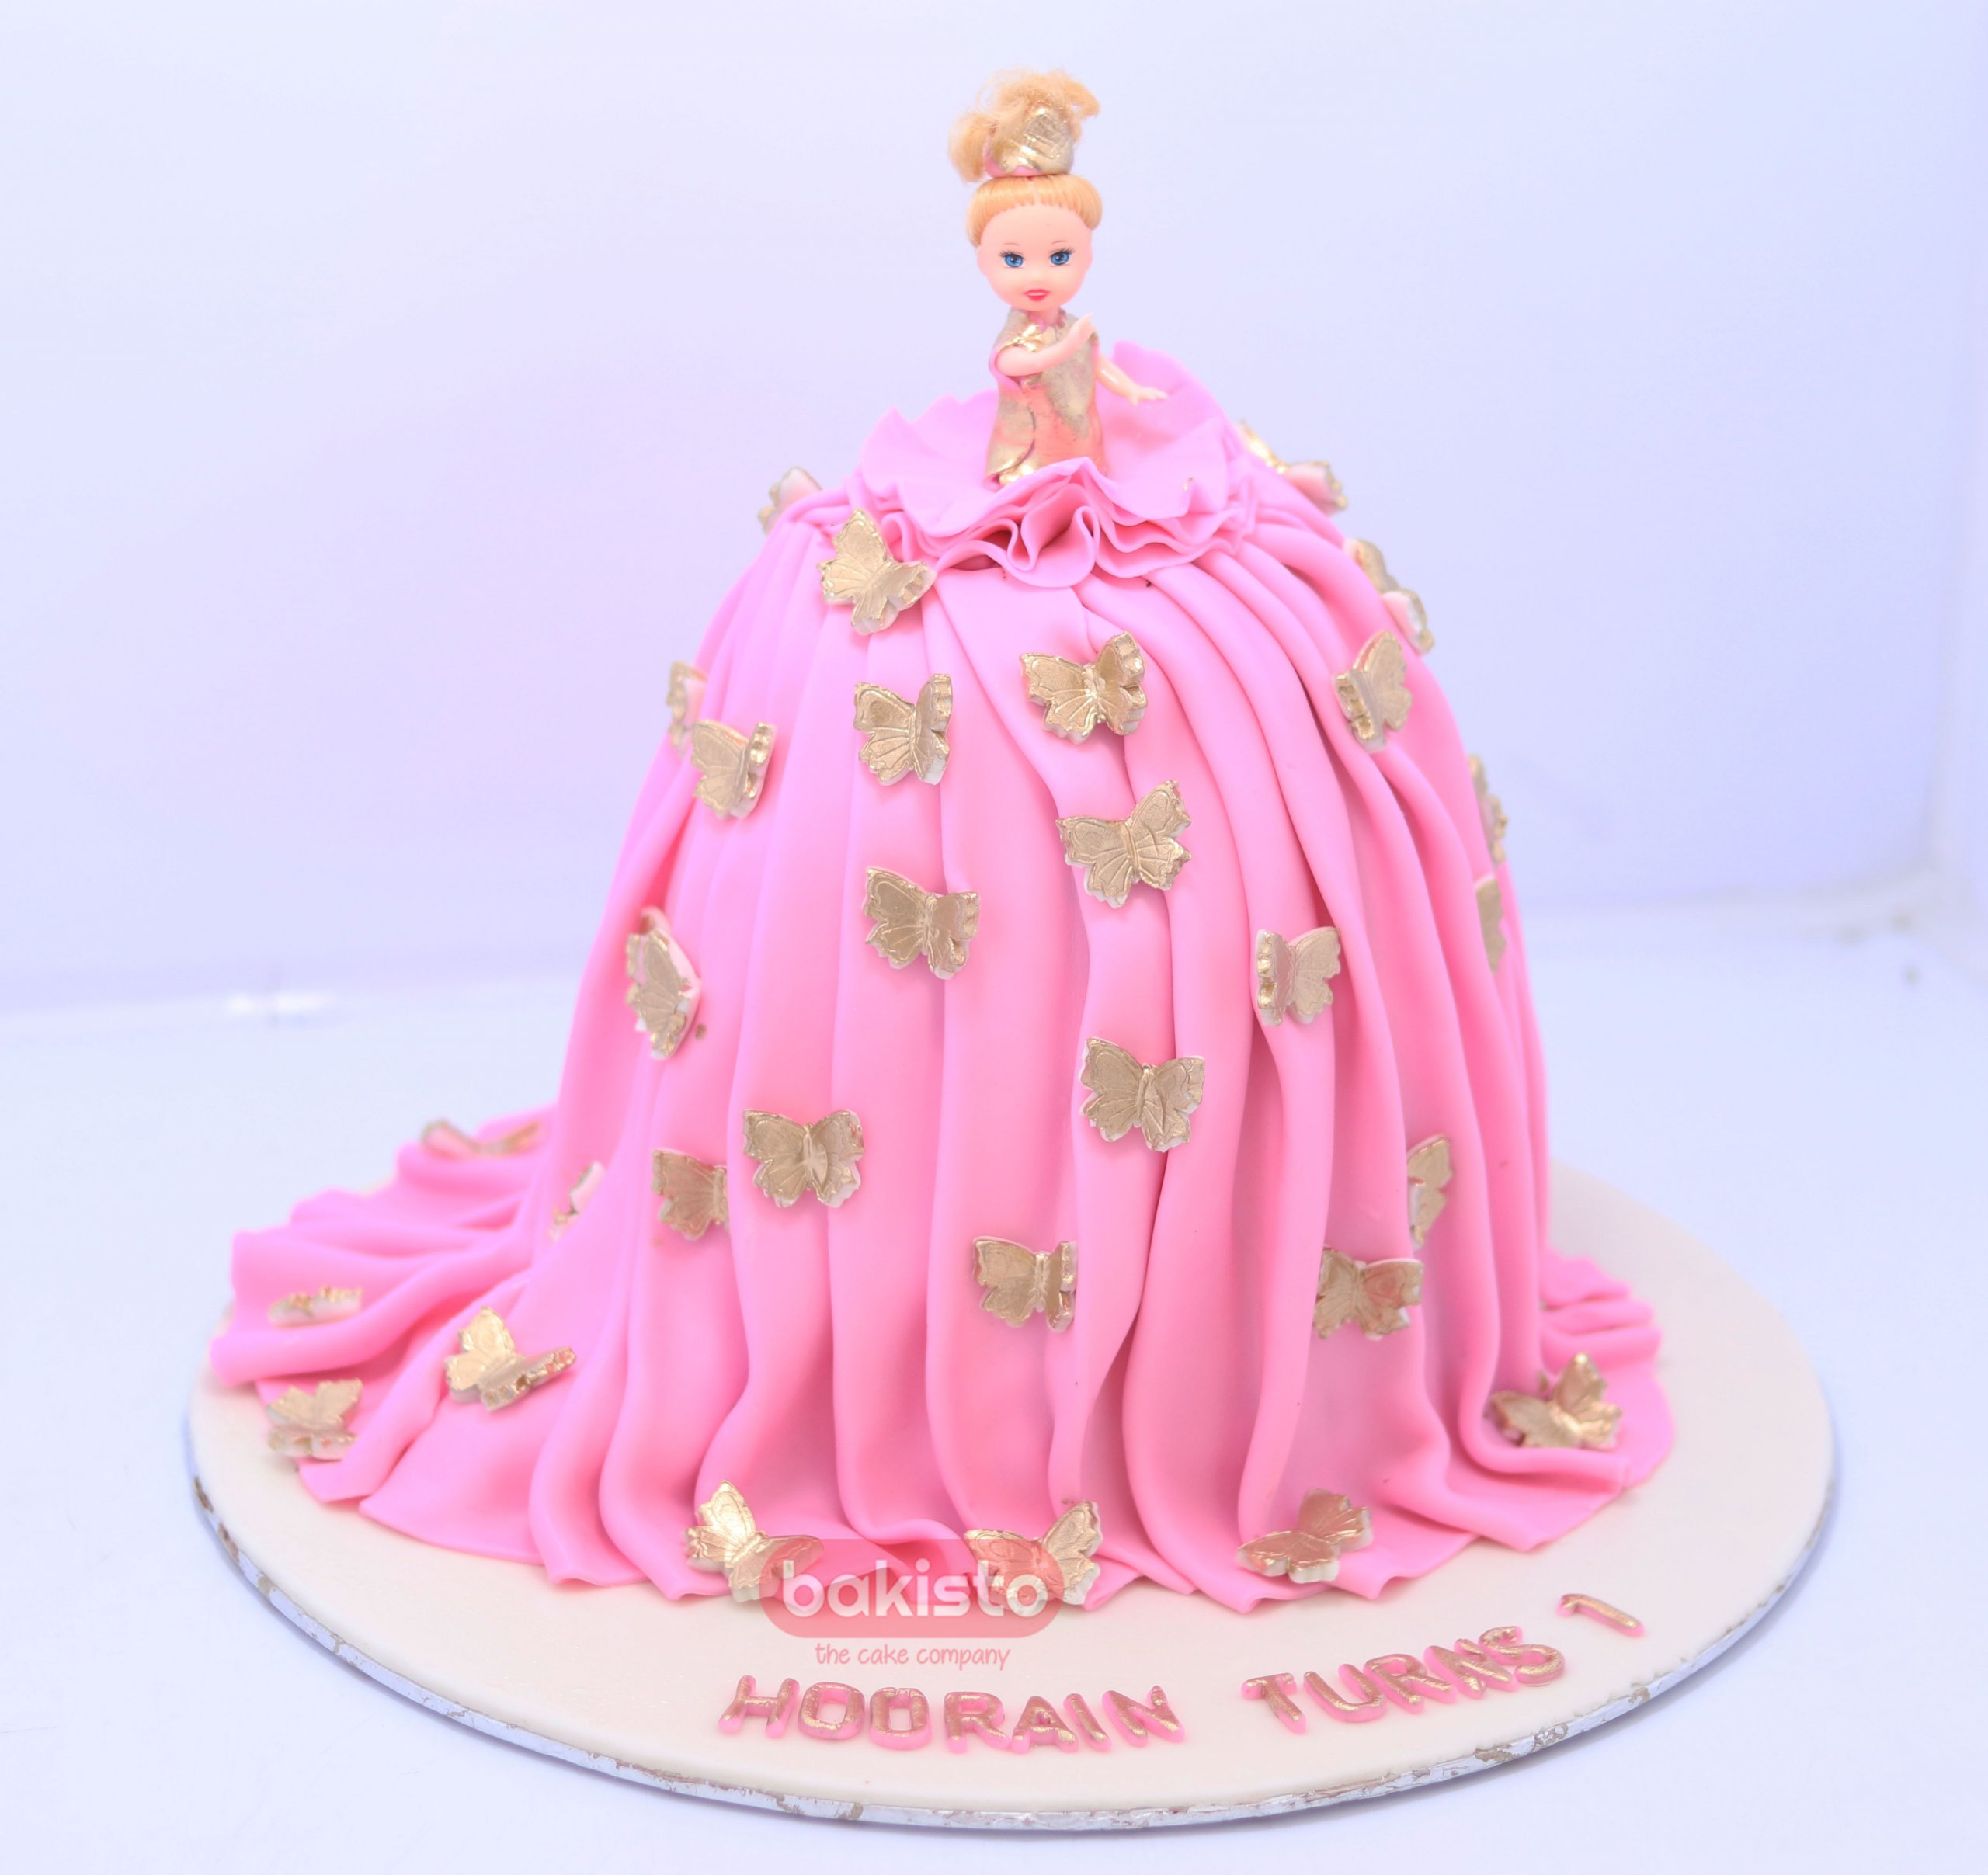 Groovy Barbie Birthday Cake Now Available At Your Doorsteps In Lahore Funny Birthday Cards Online Elaedamsfinfo